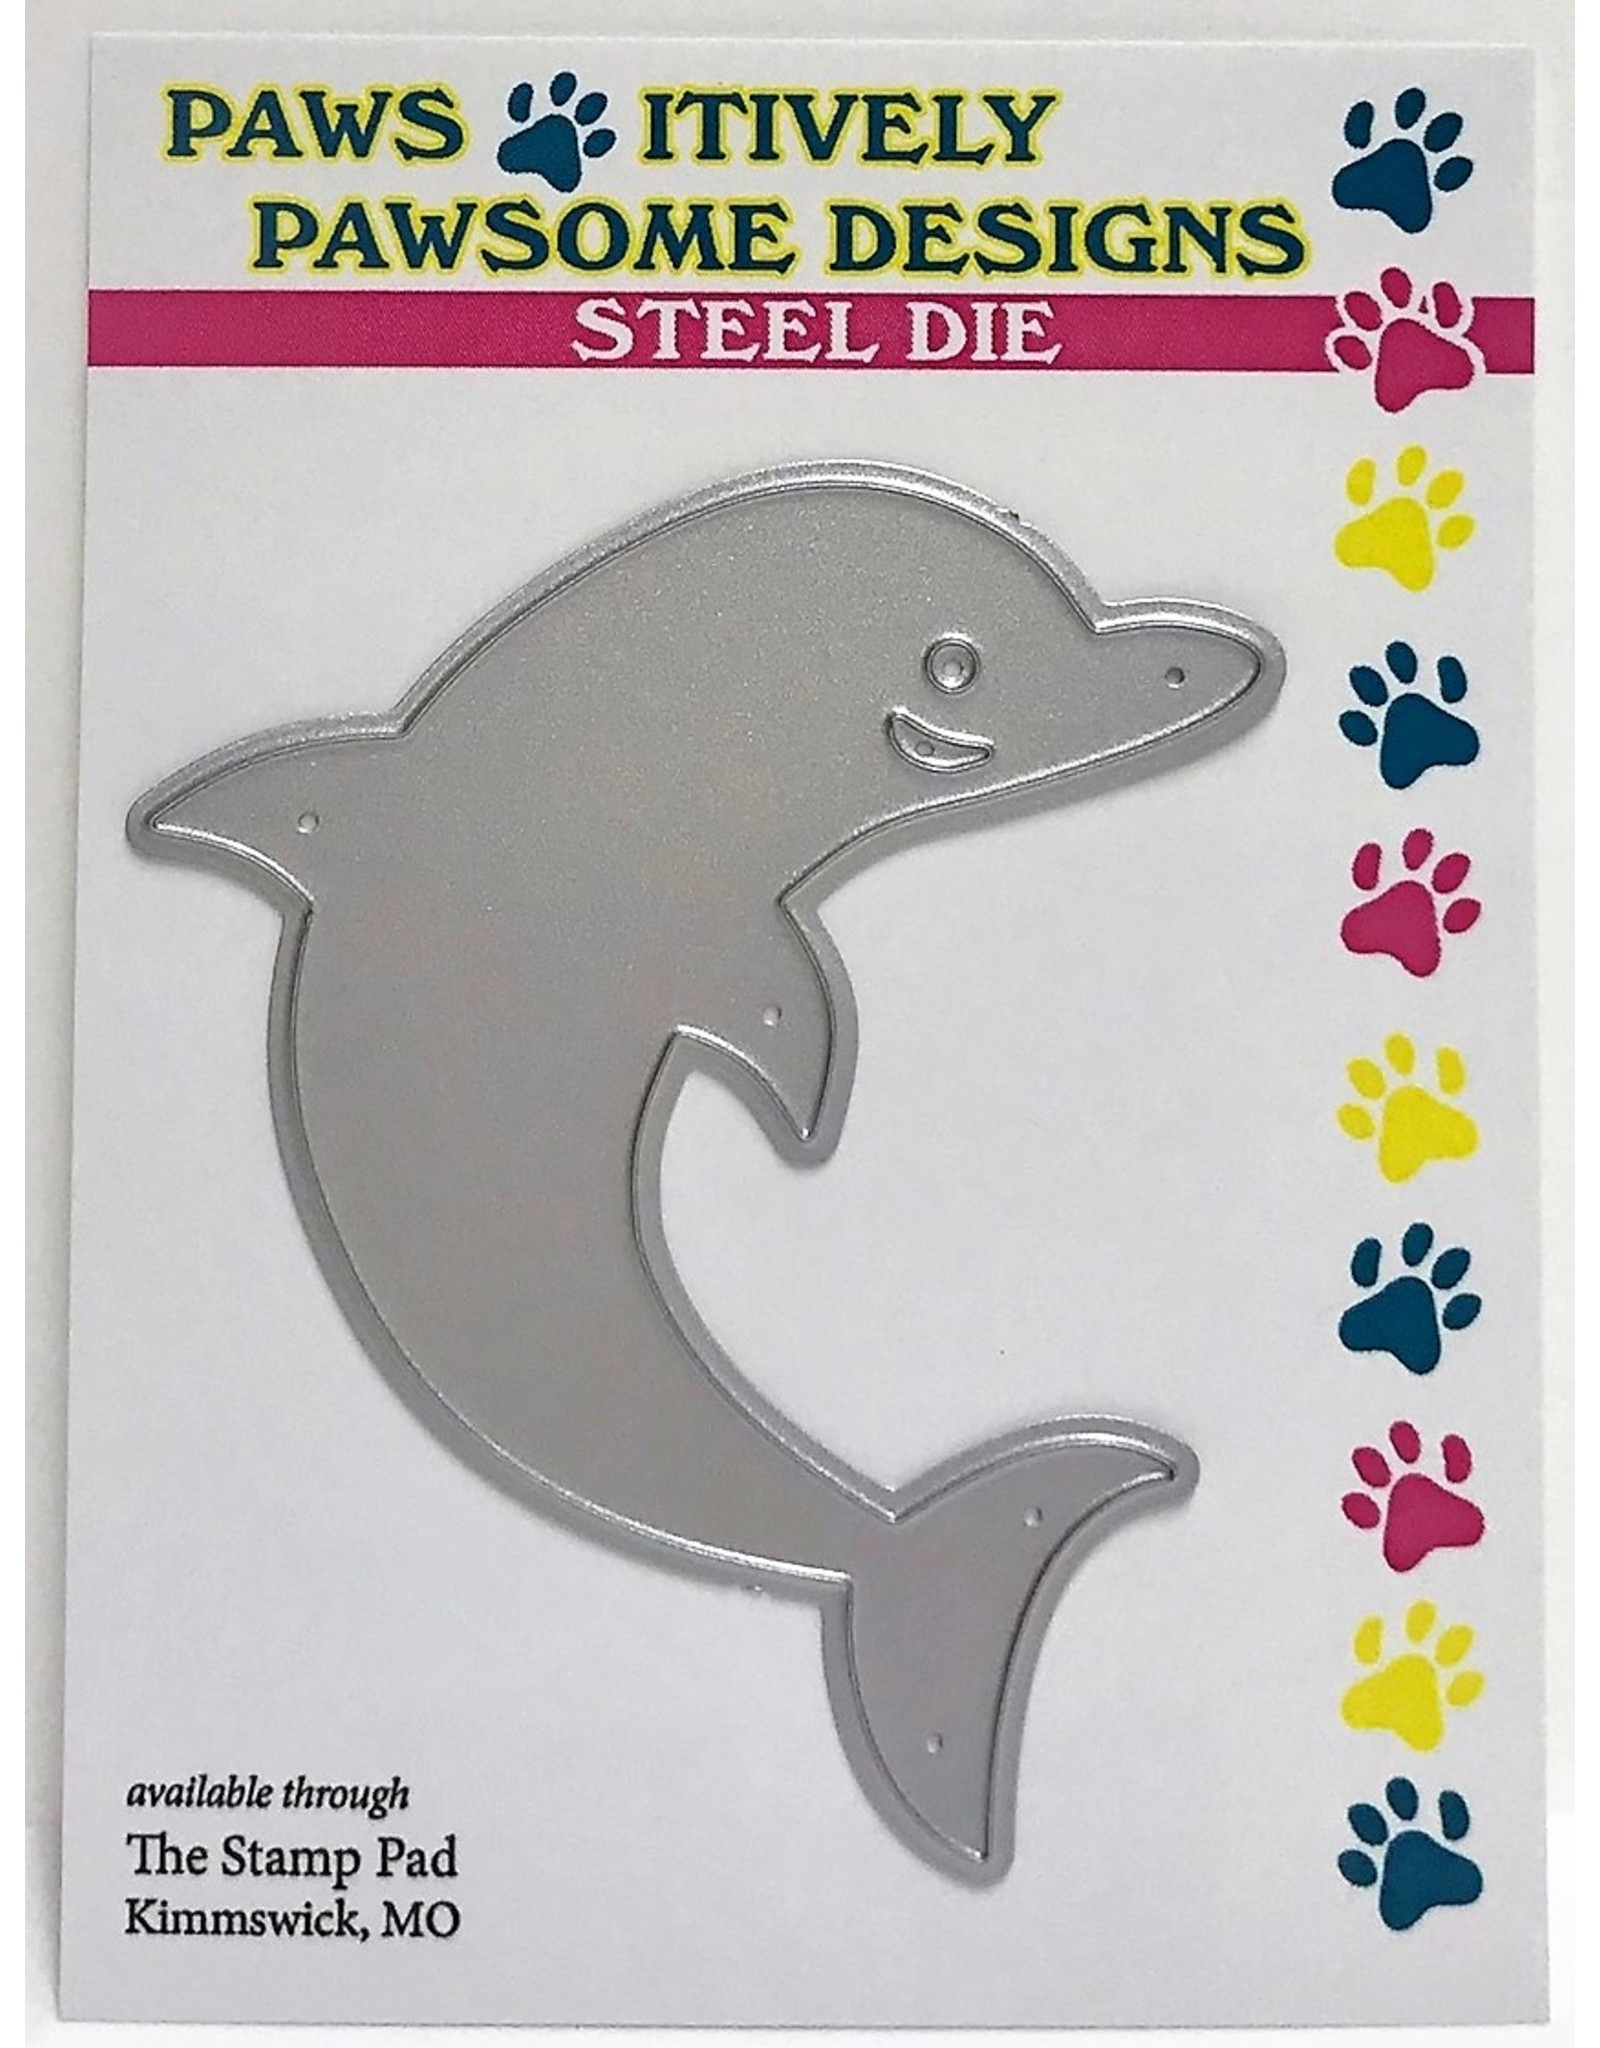 Paws-Itively Pawsome Designs Daphne D. Olphin - Die